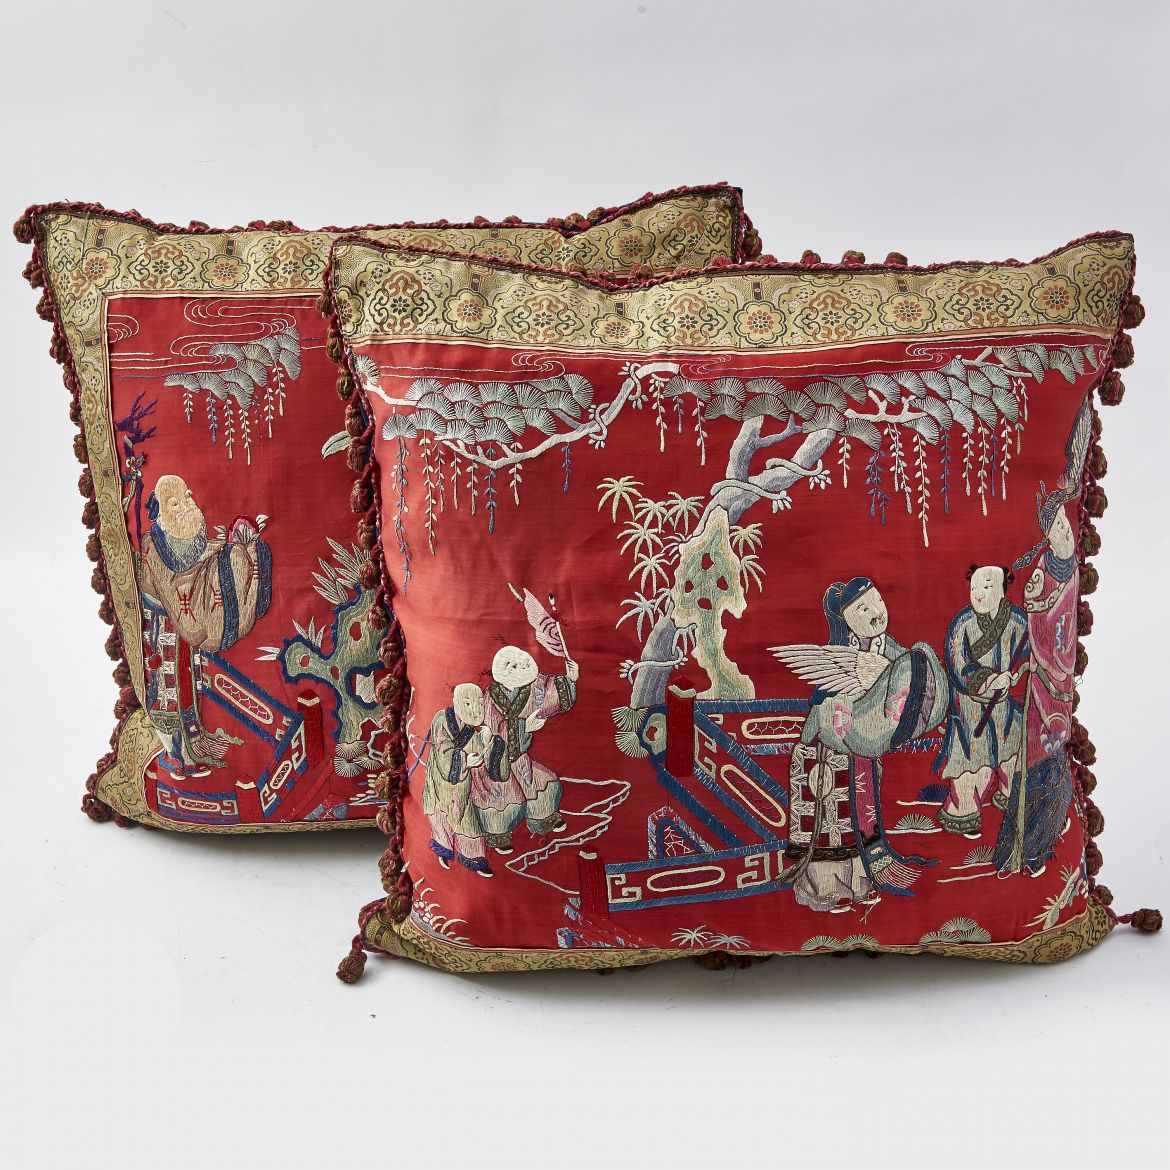 Japanese Embroidered Silk Cushions With Tasseled Fringe